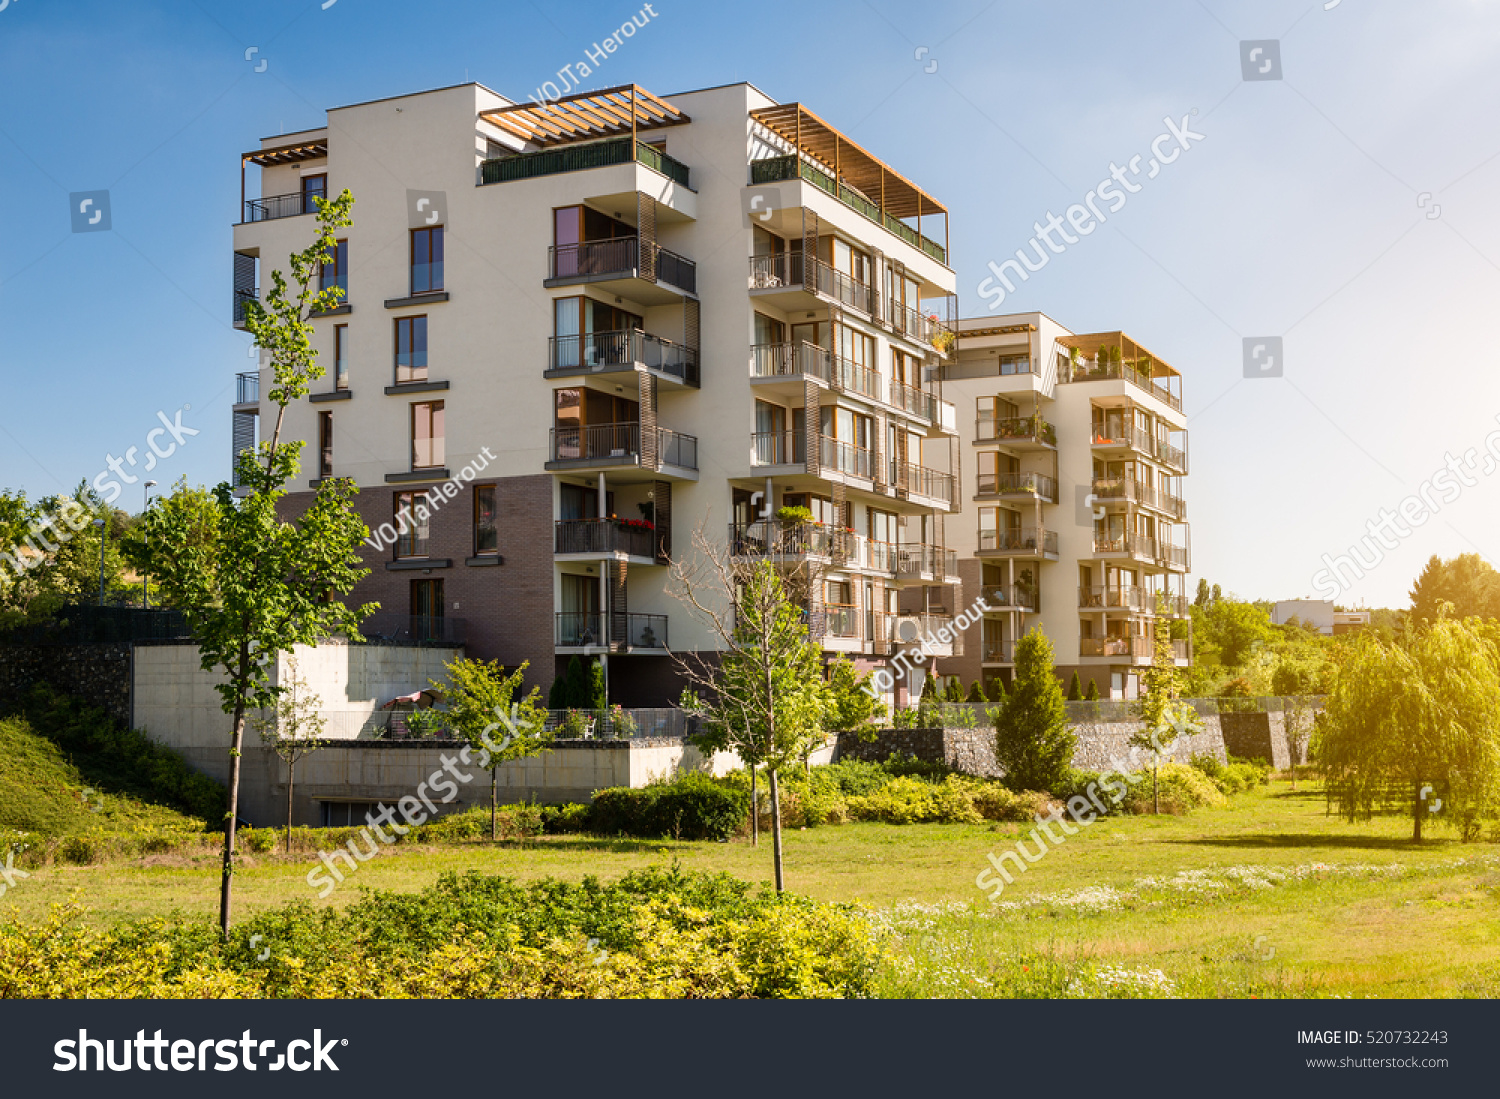 living in the block of flats essay Also, blocks of flats are always situated in the centre of the town so you have everything near the place you live, for example, the chemist's, the greengrocers, the supermarket, etc however, living in a flat has also some disadvantages.